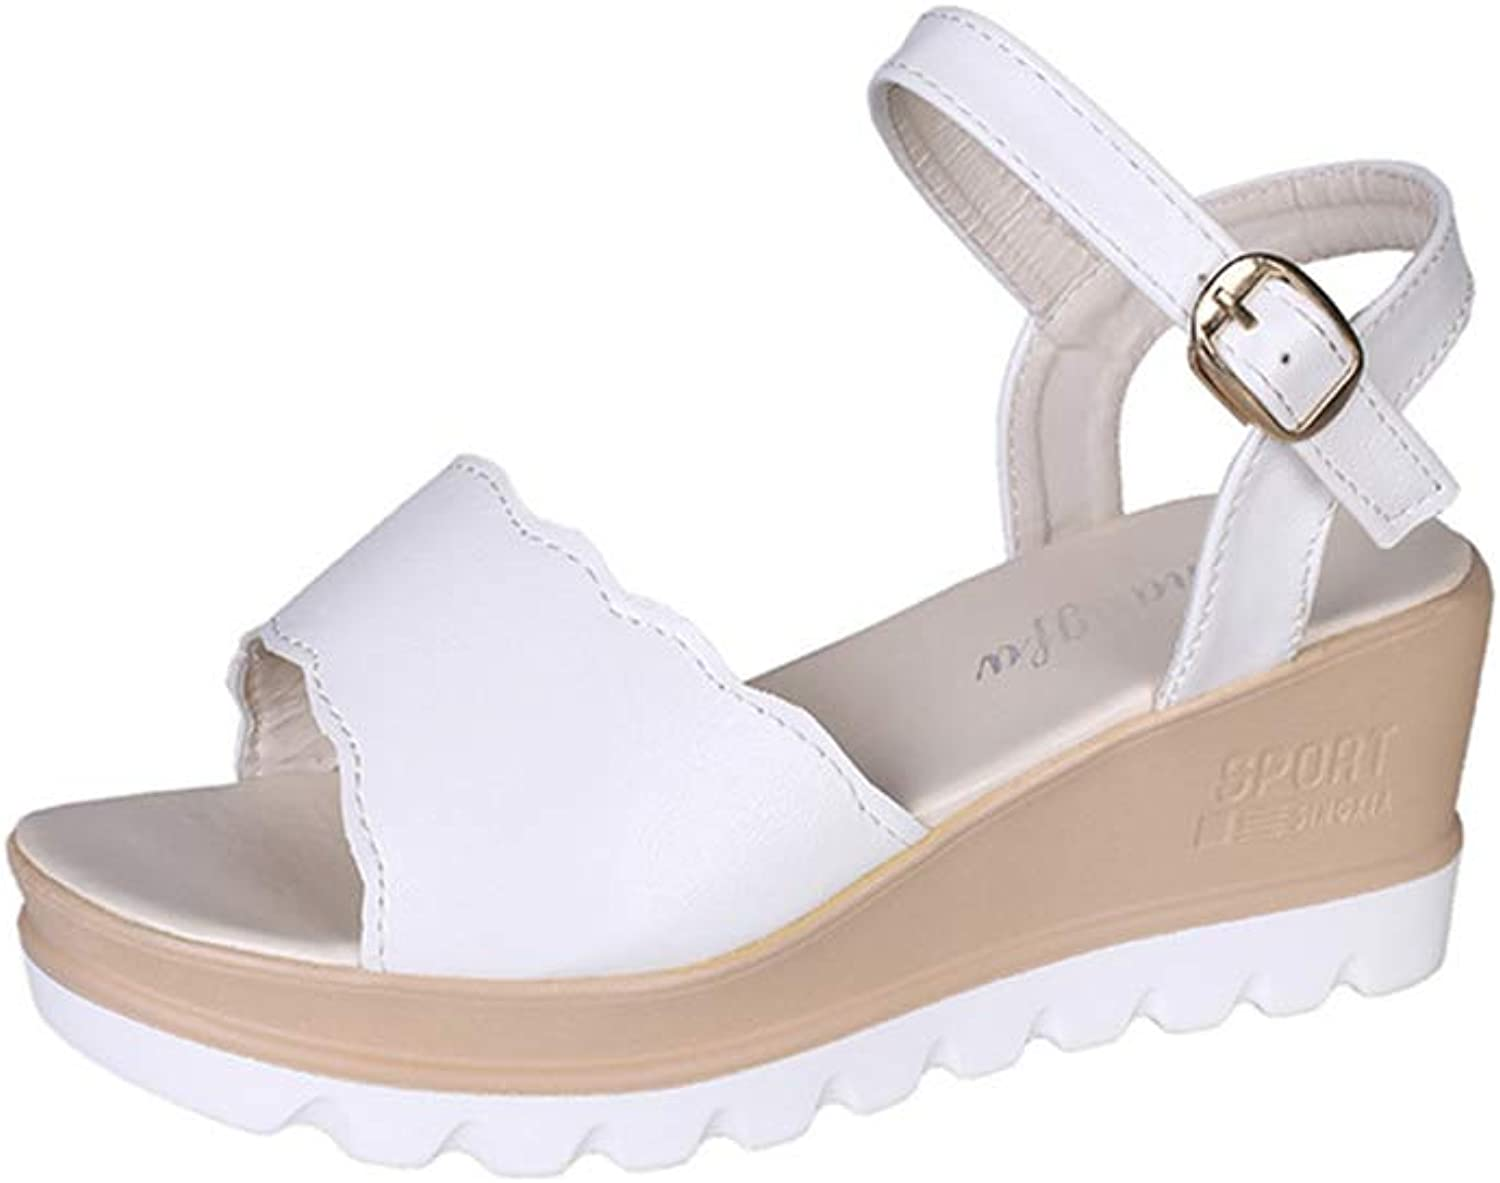 F1rst Rate Womens Strappy Platform Wedge Sandals Open Toe Slingback Mid Heel Summer Sandals